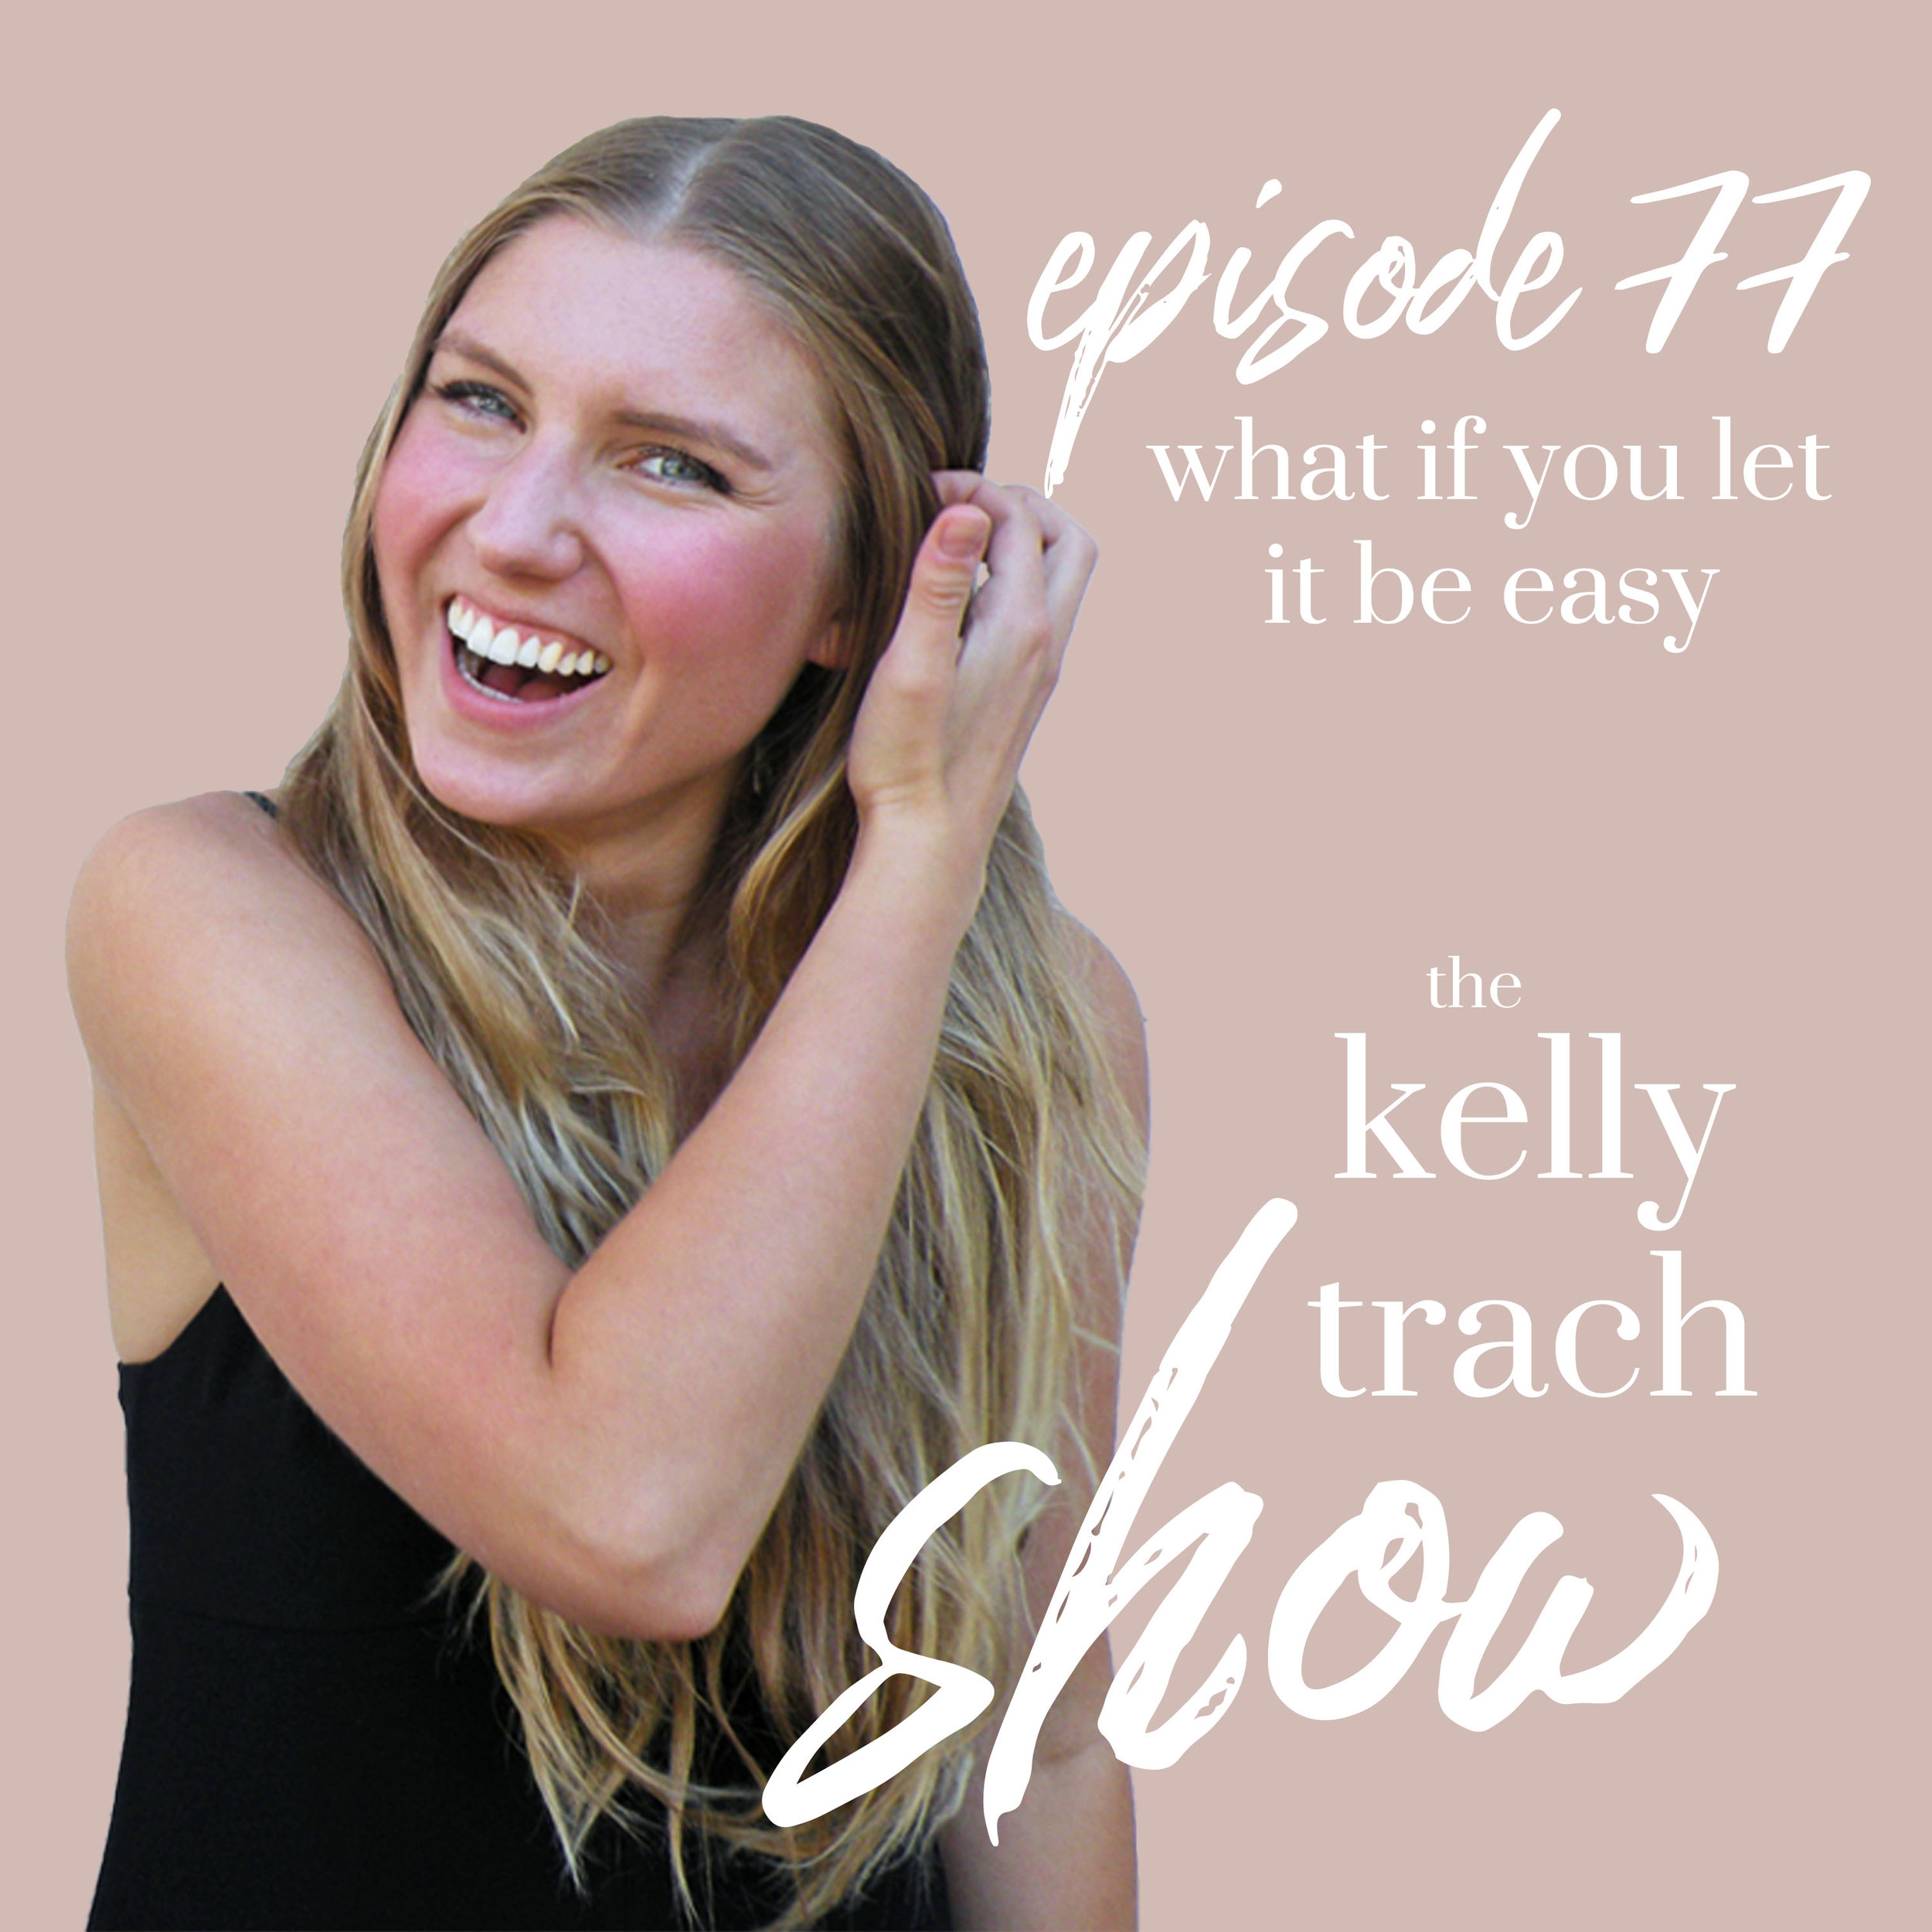 77 - What if You Let it Be Easy - The Kelly Trach Show Podcast.jpg